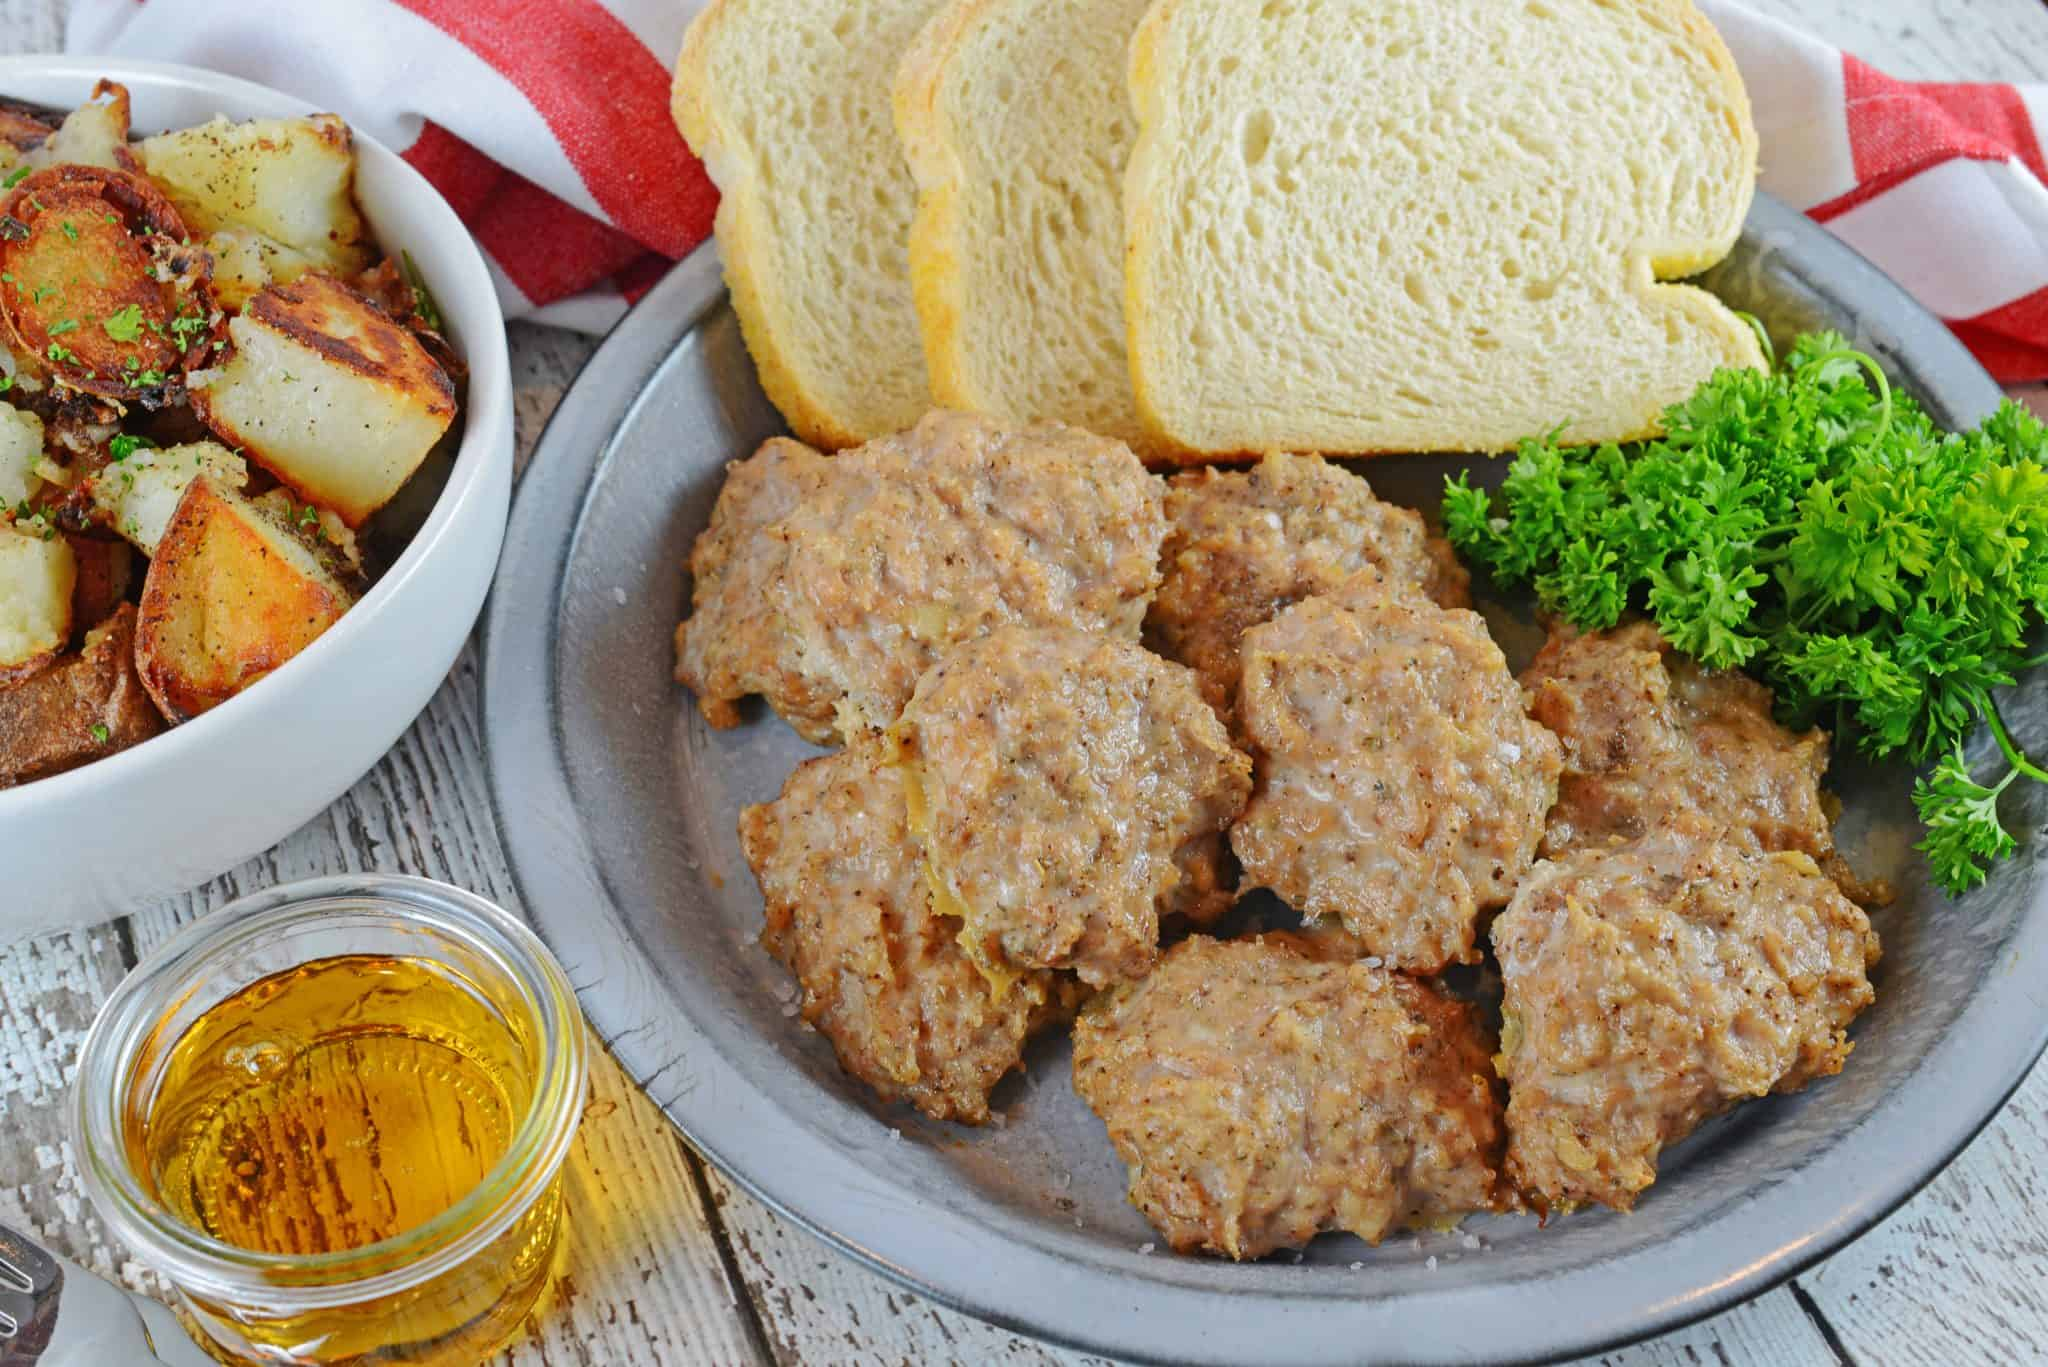 Maple Sage Chicken Sausage is an easy breakfast sausage recipe using a savory sausage spice mix. They can be made ahead of time and frozen!